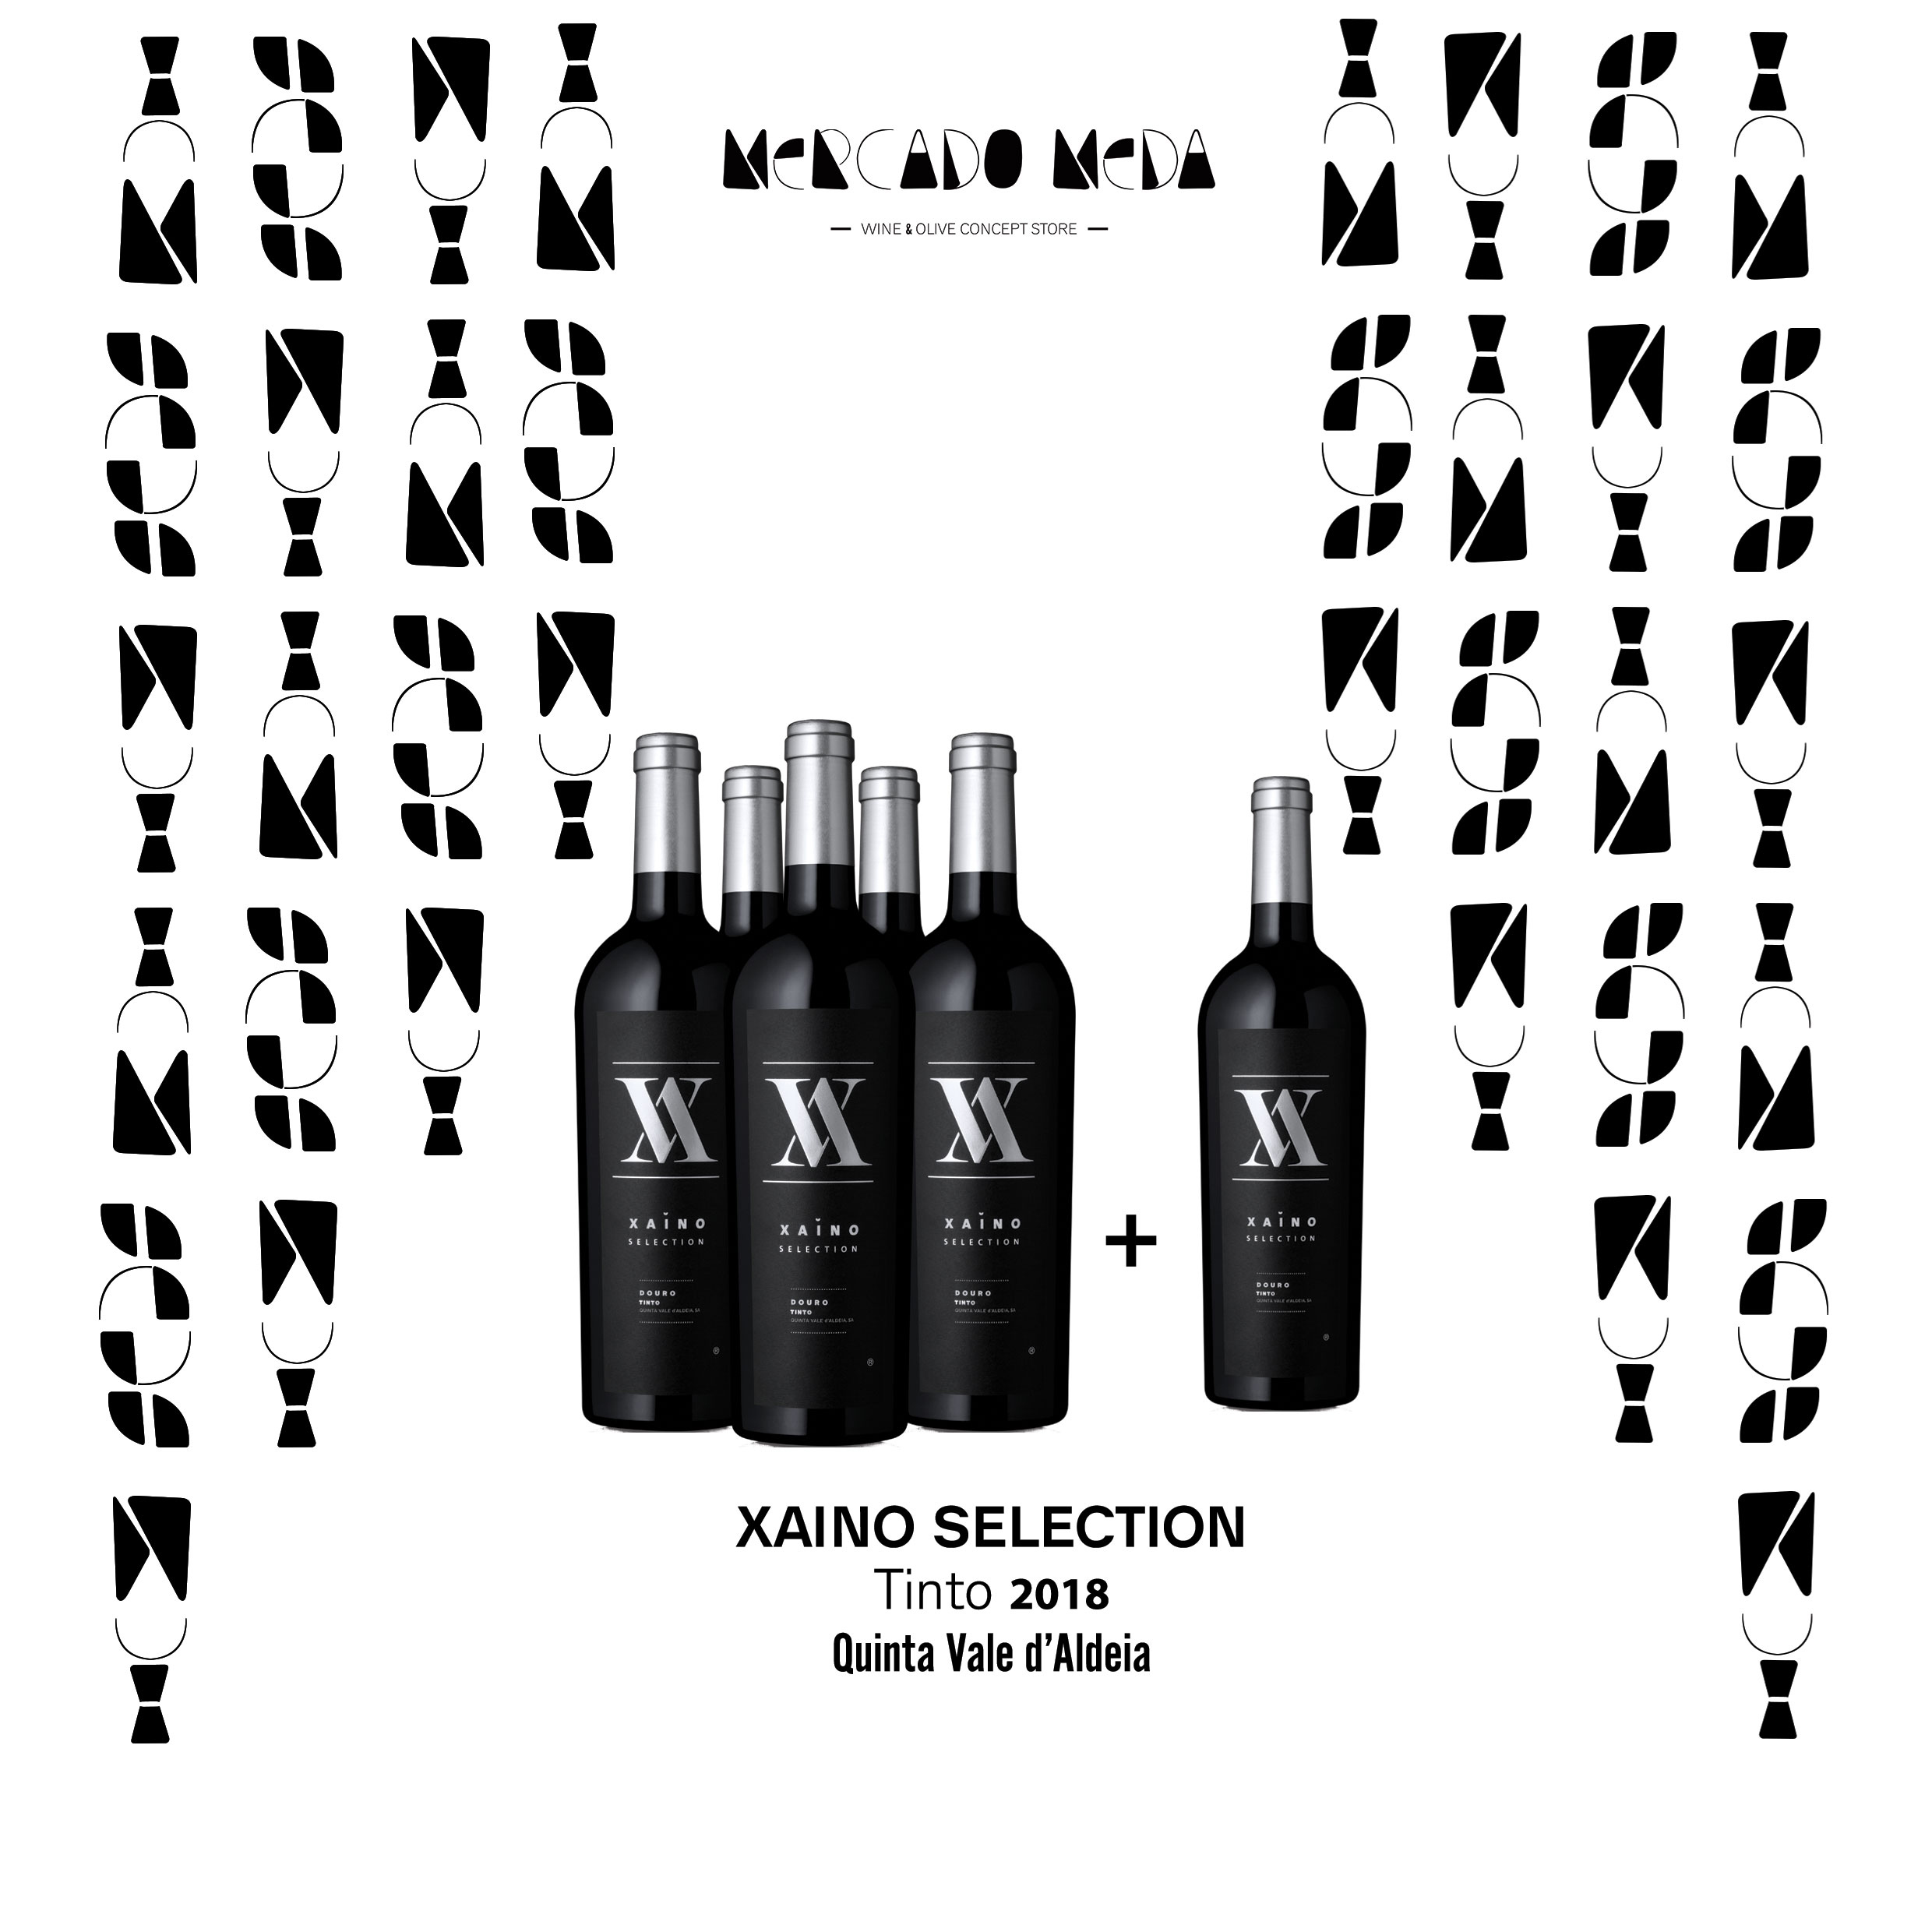 Mercado Box Vinho Xaino Selection